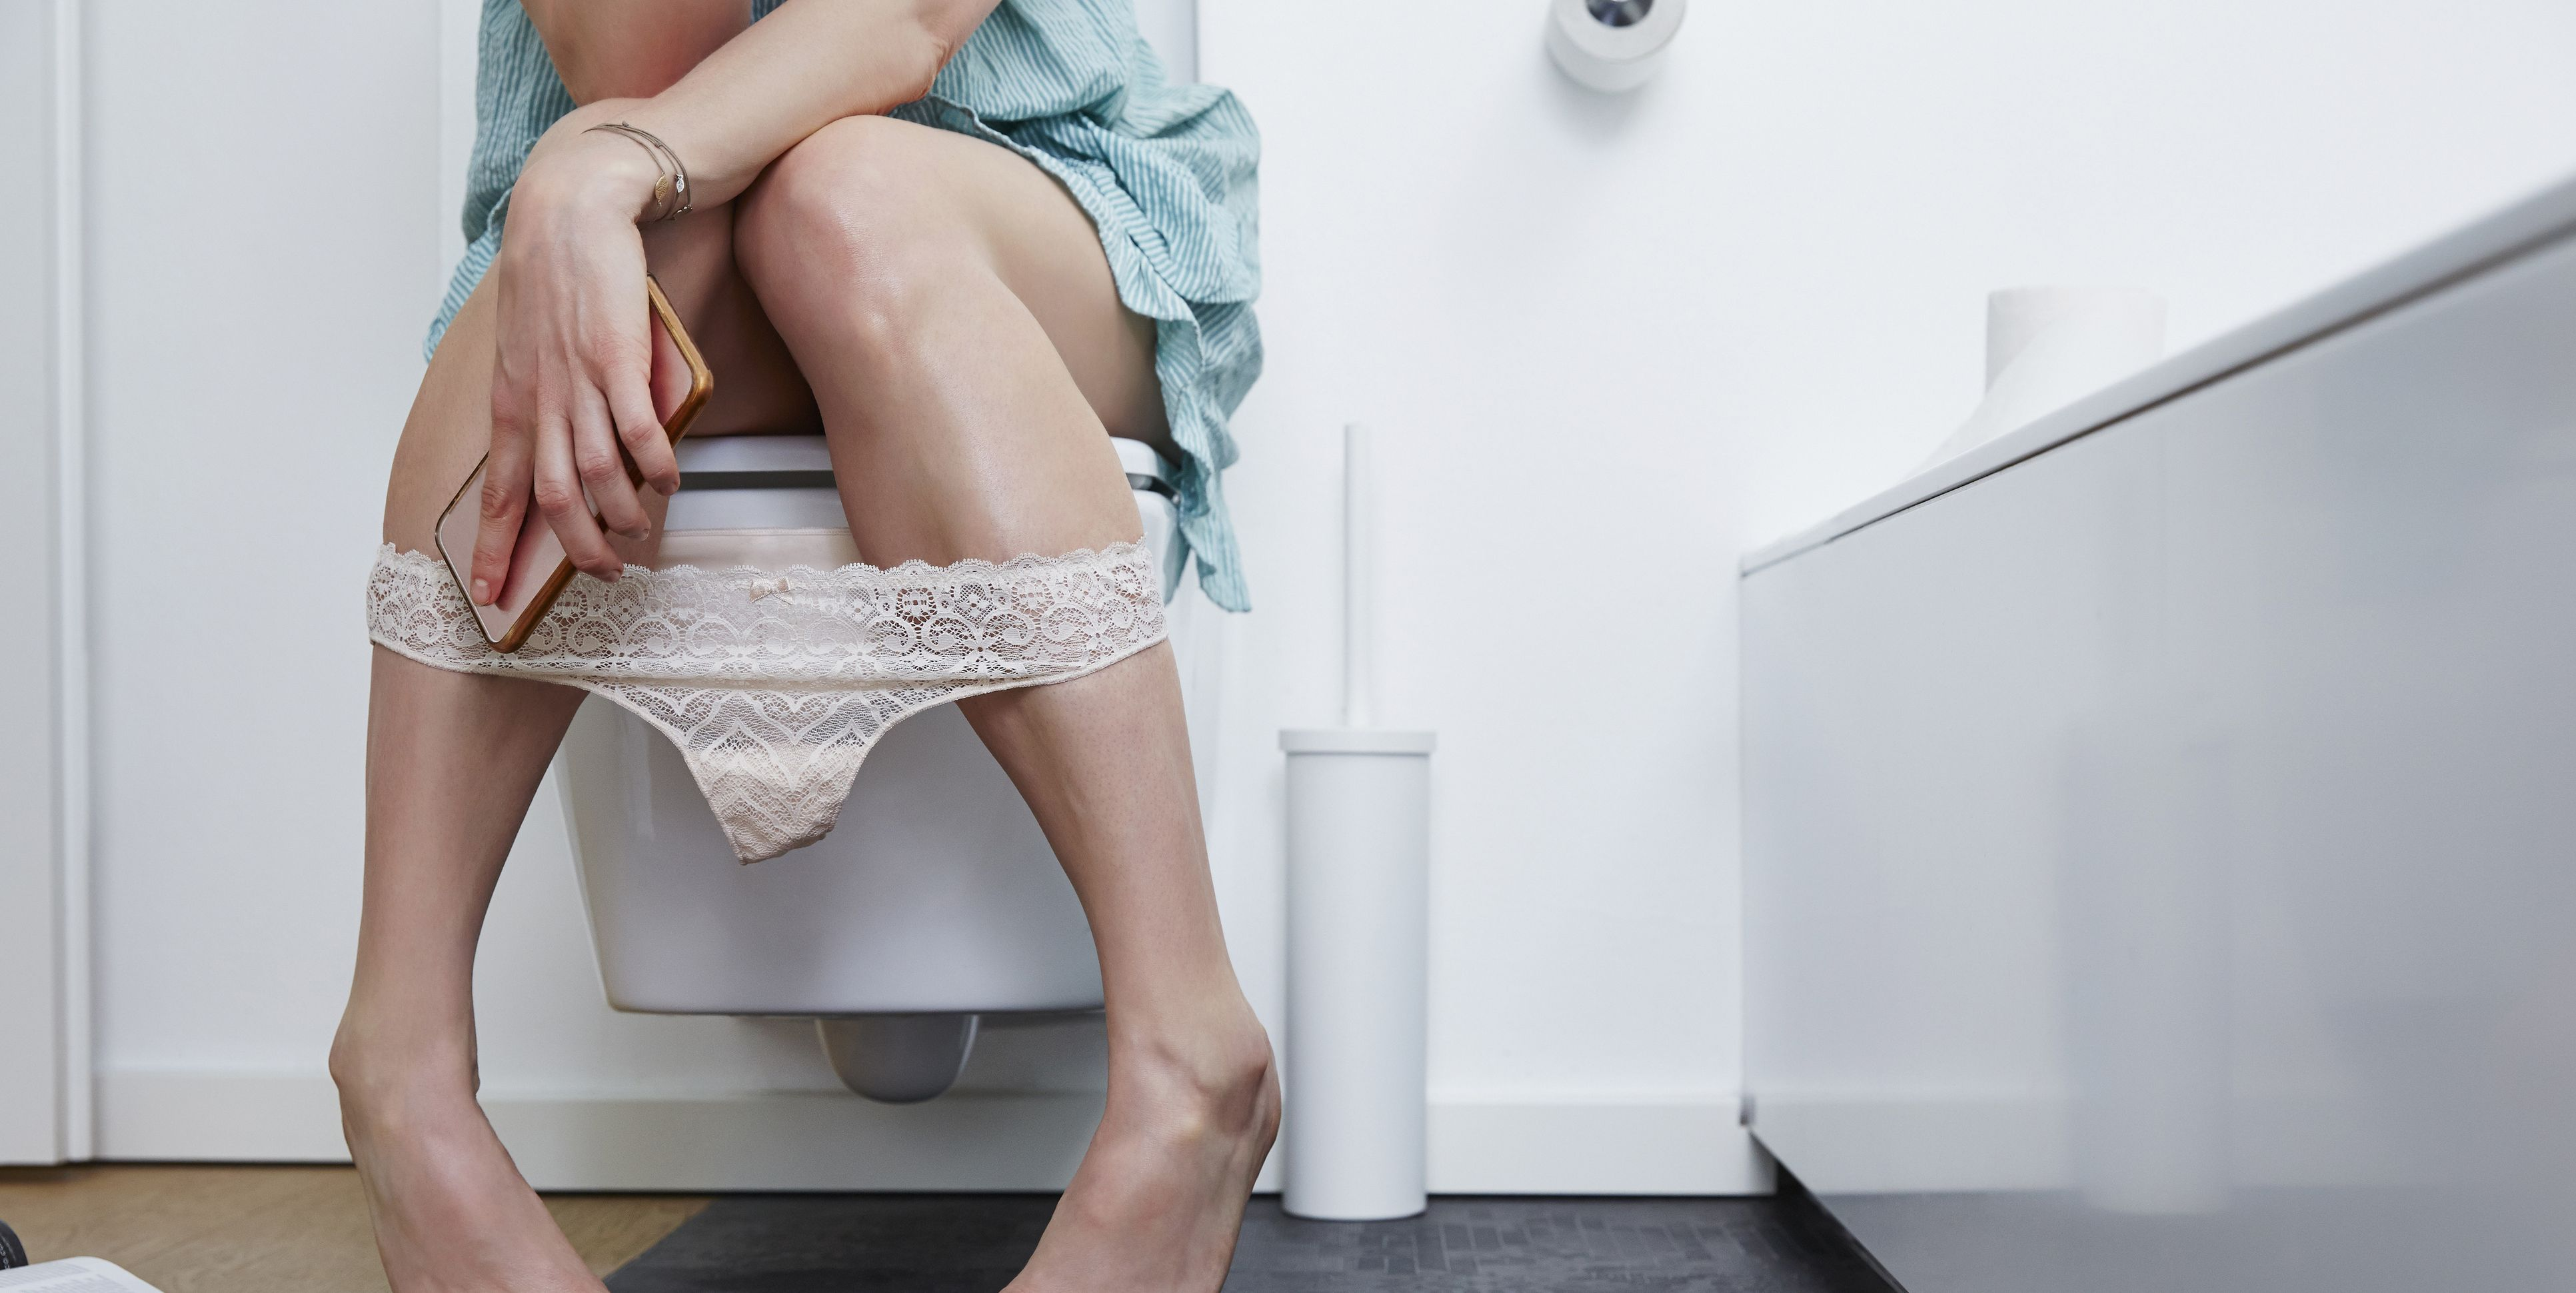 Woman with smartphone on toilet